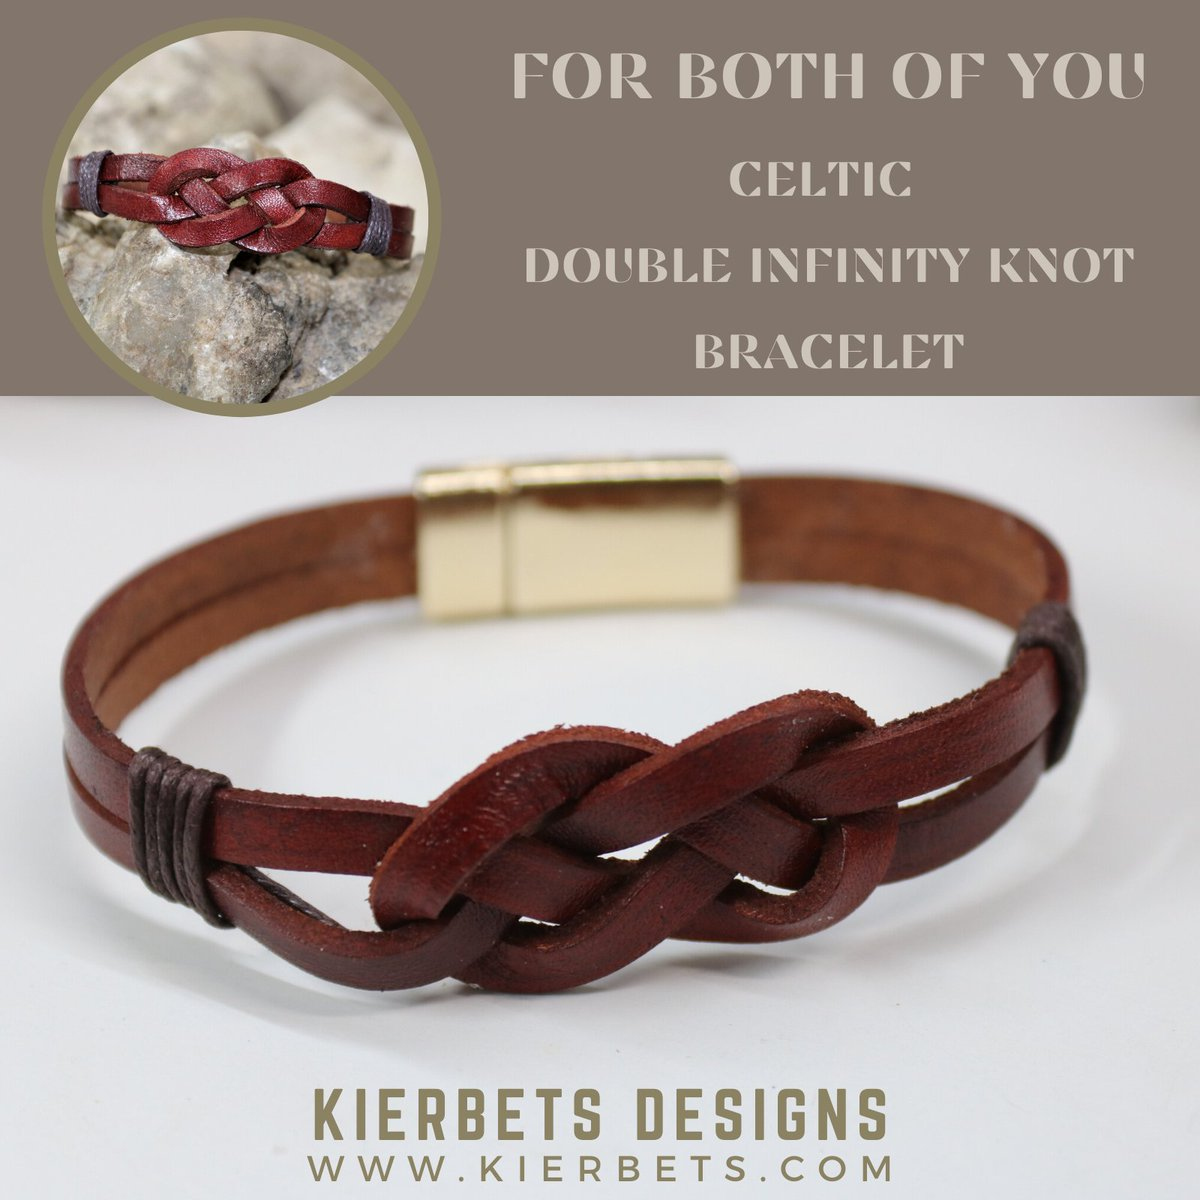 The Celtic knot, also called the mystic or unending knot is a unique part of Celtic history  to express eternal love, devotion and connections of the soul. Get yours now!  https://soo.nr/xfDw #celticlife #stonelift #celticculture #festival #rennfaire #scottishgames #menstylespic.twitter.com/0Y9AZtcTdK